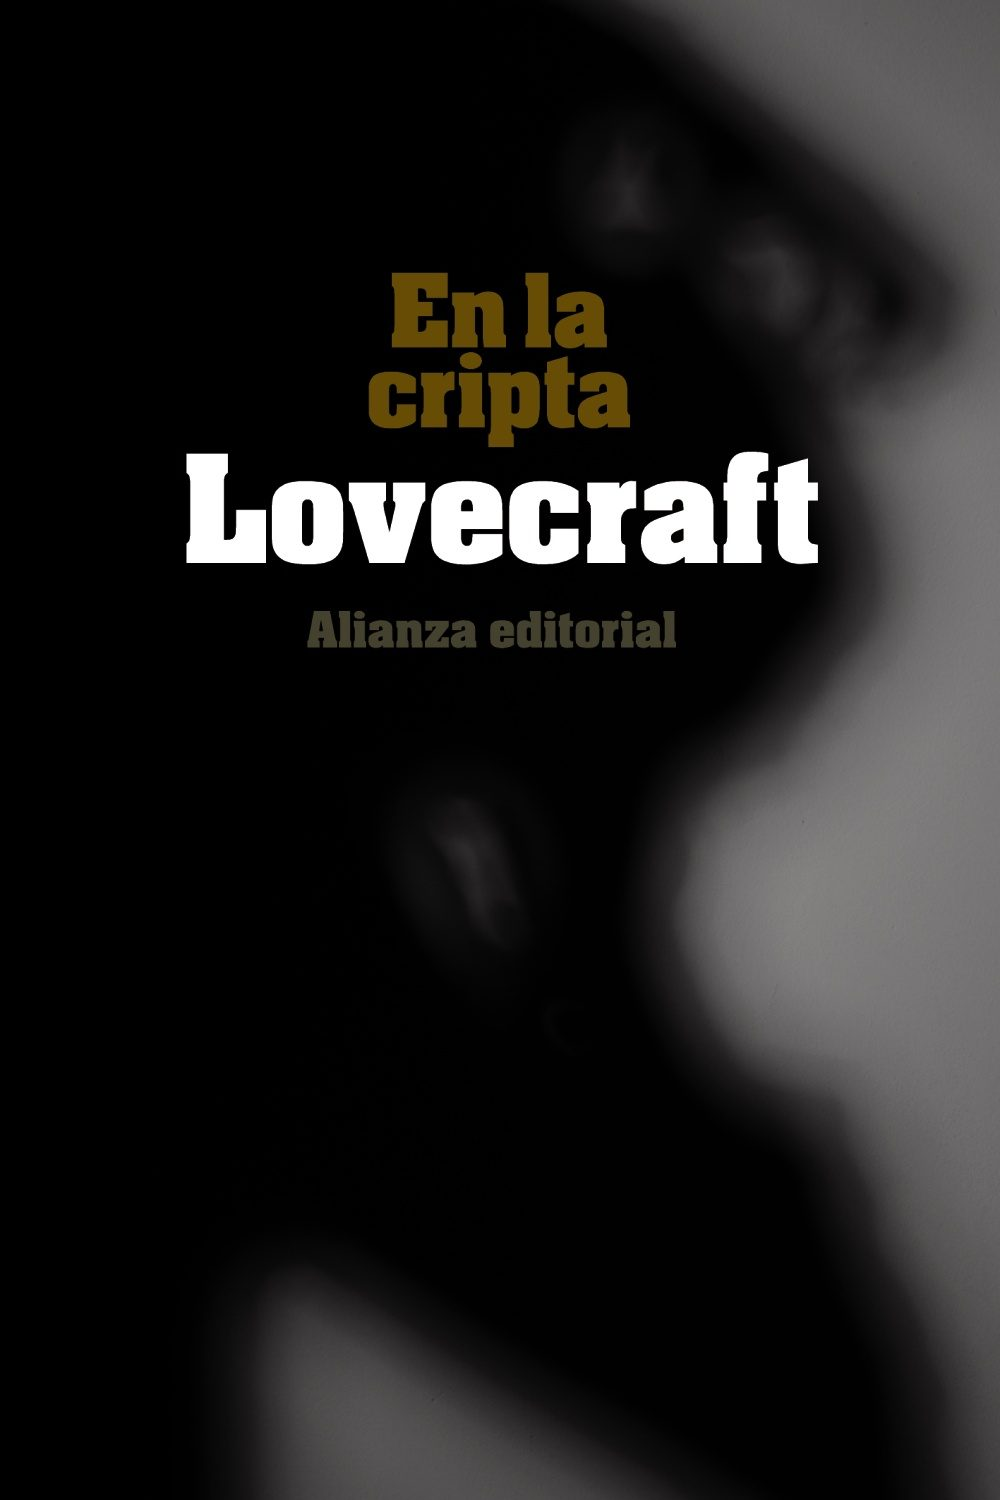 Lovecraft cripta.jpg